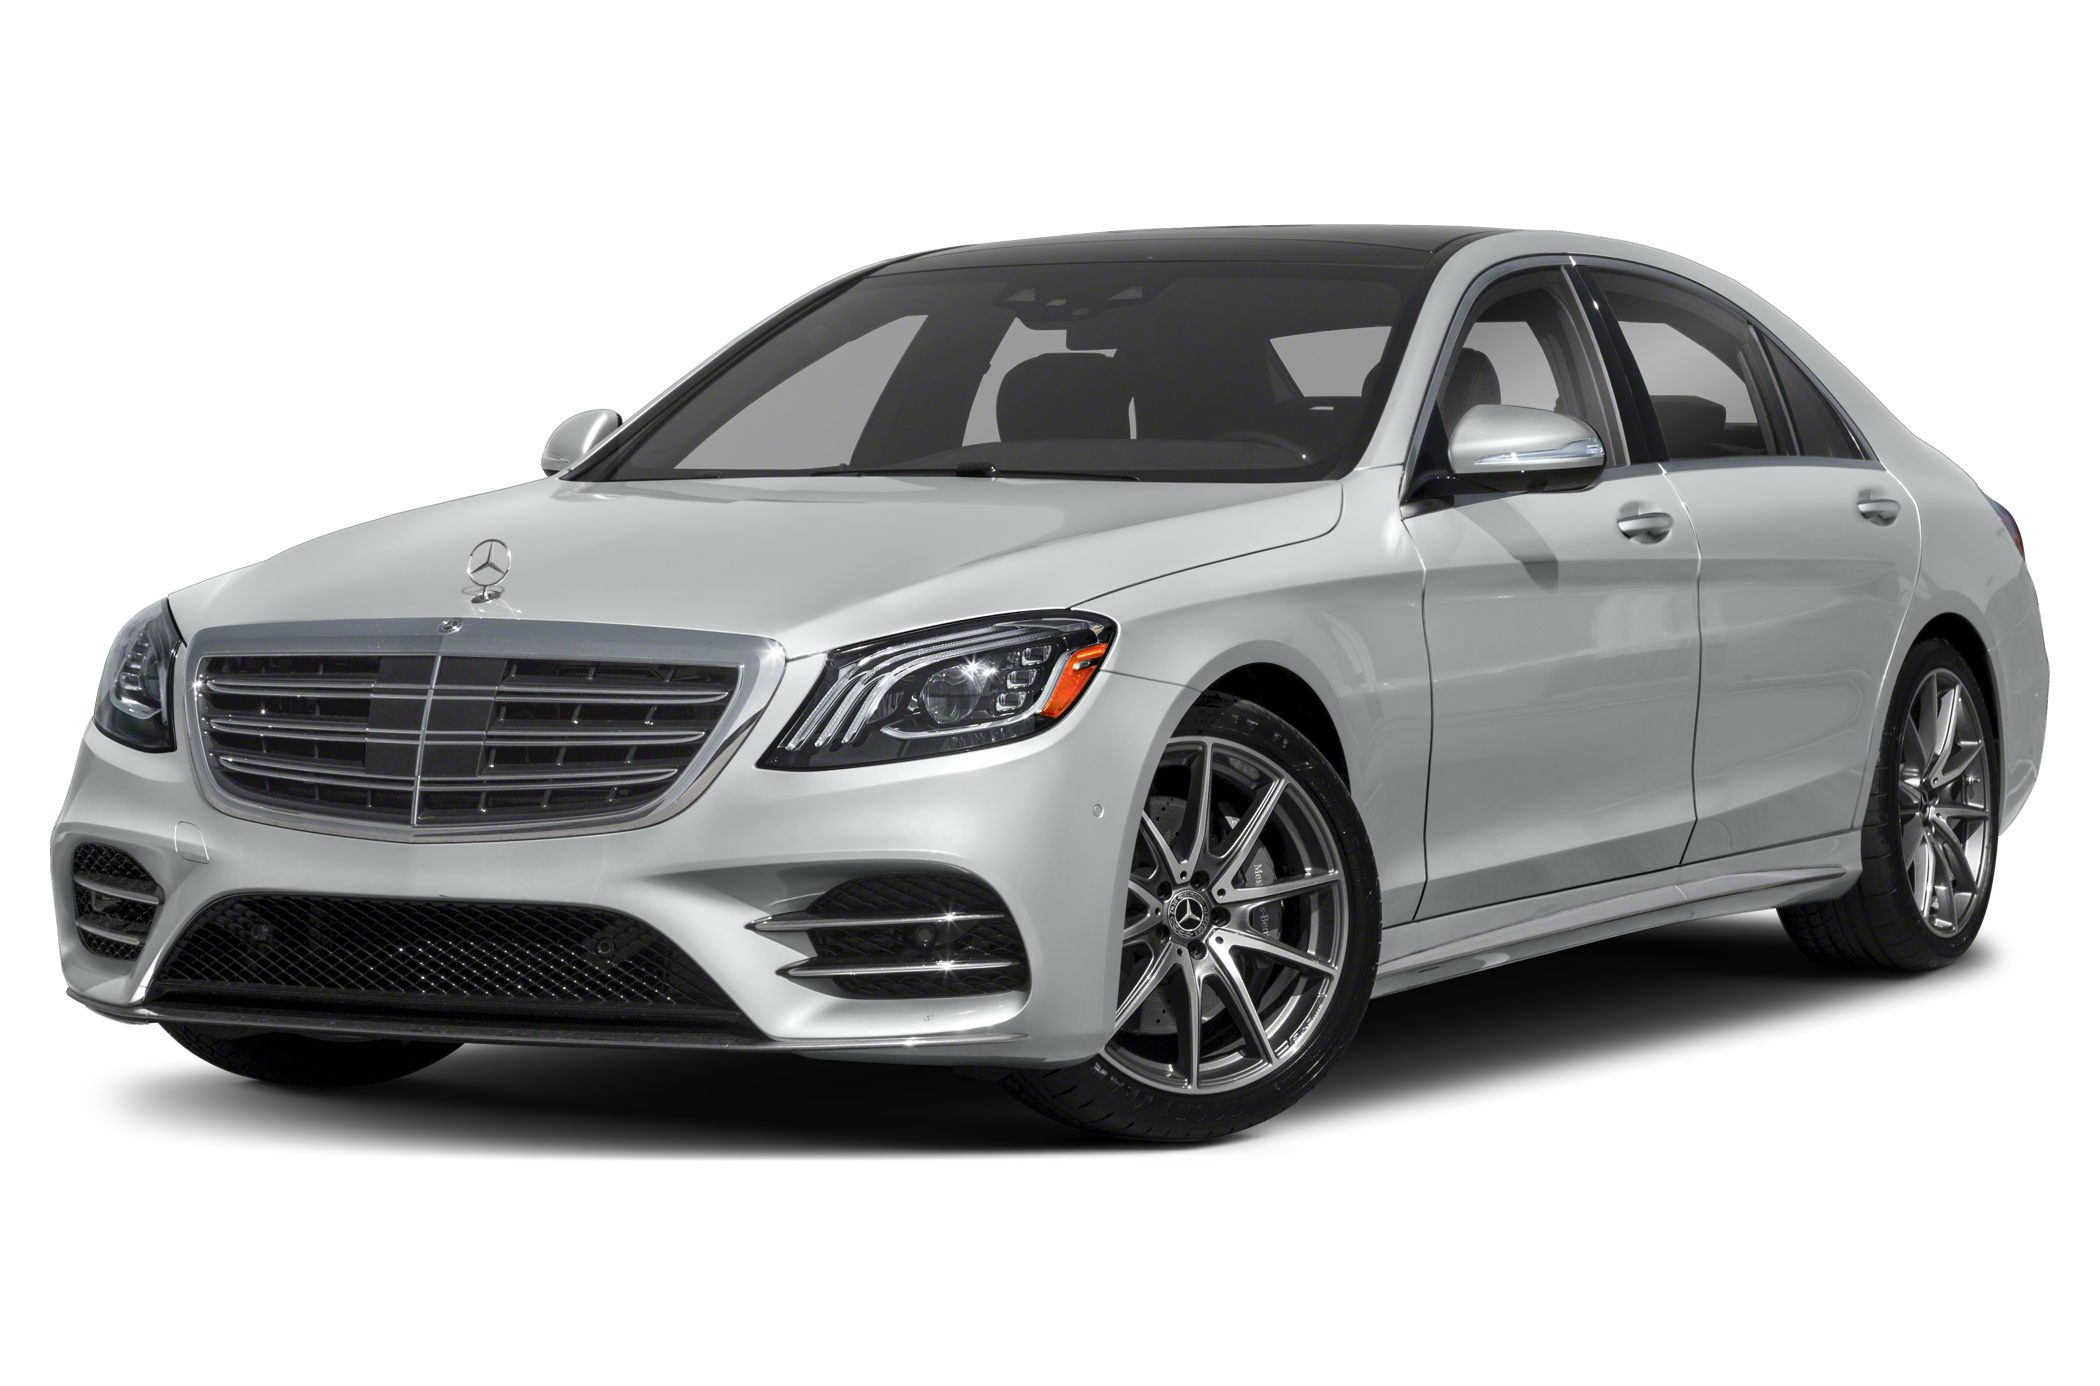 Face to giant face with the 2014 Mercedes-Benz S-Class [w/videos]